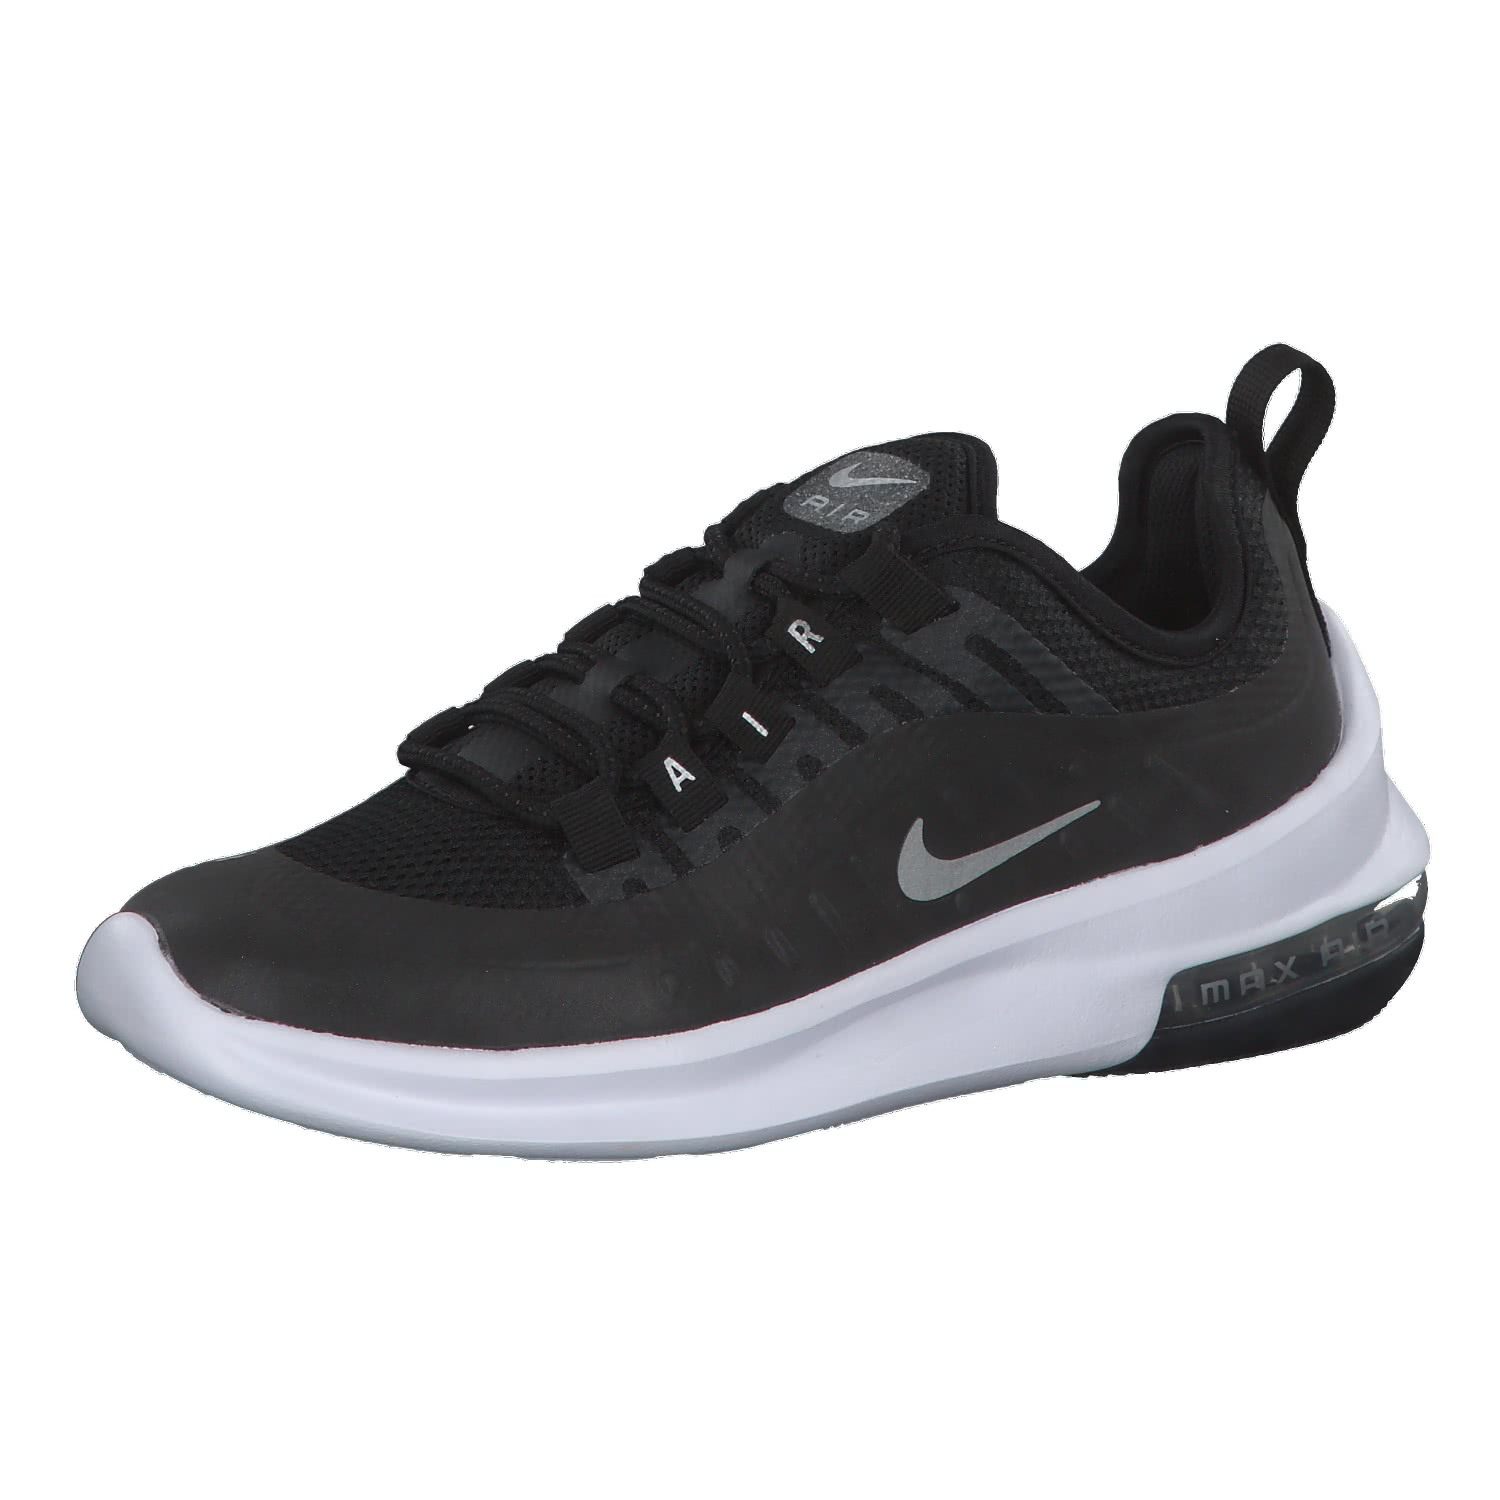 elegant shoes closer at reasonable price Nike Damen Sneaker Air Max Axis Premium BQ0126 | cortexpower.de